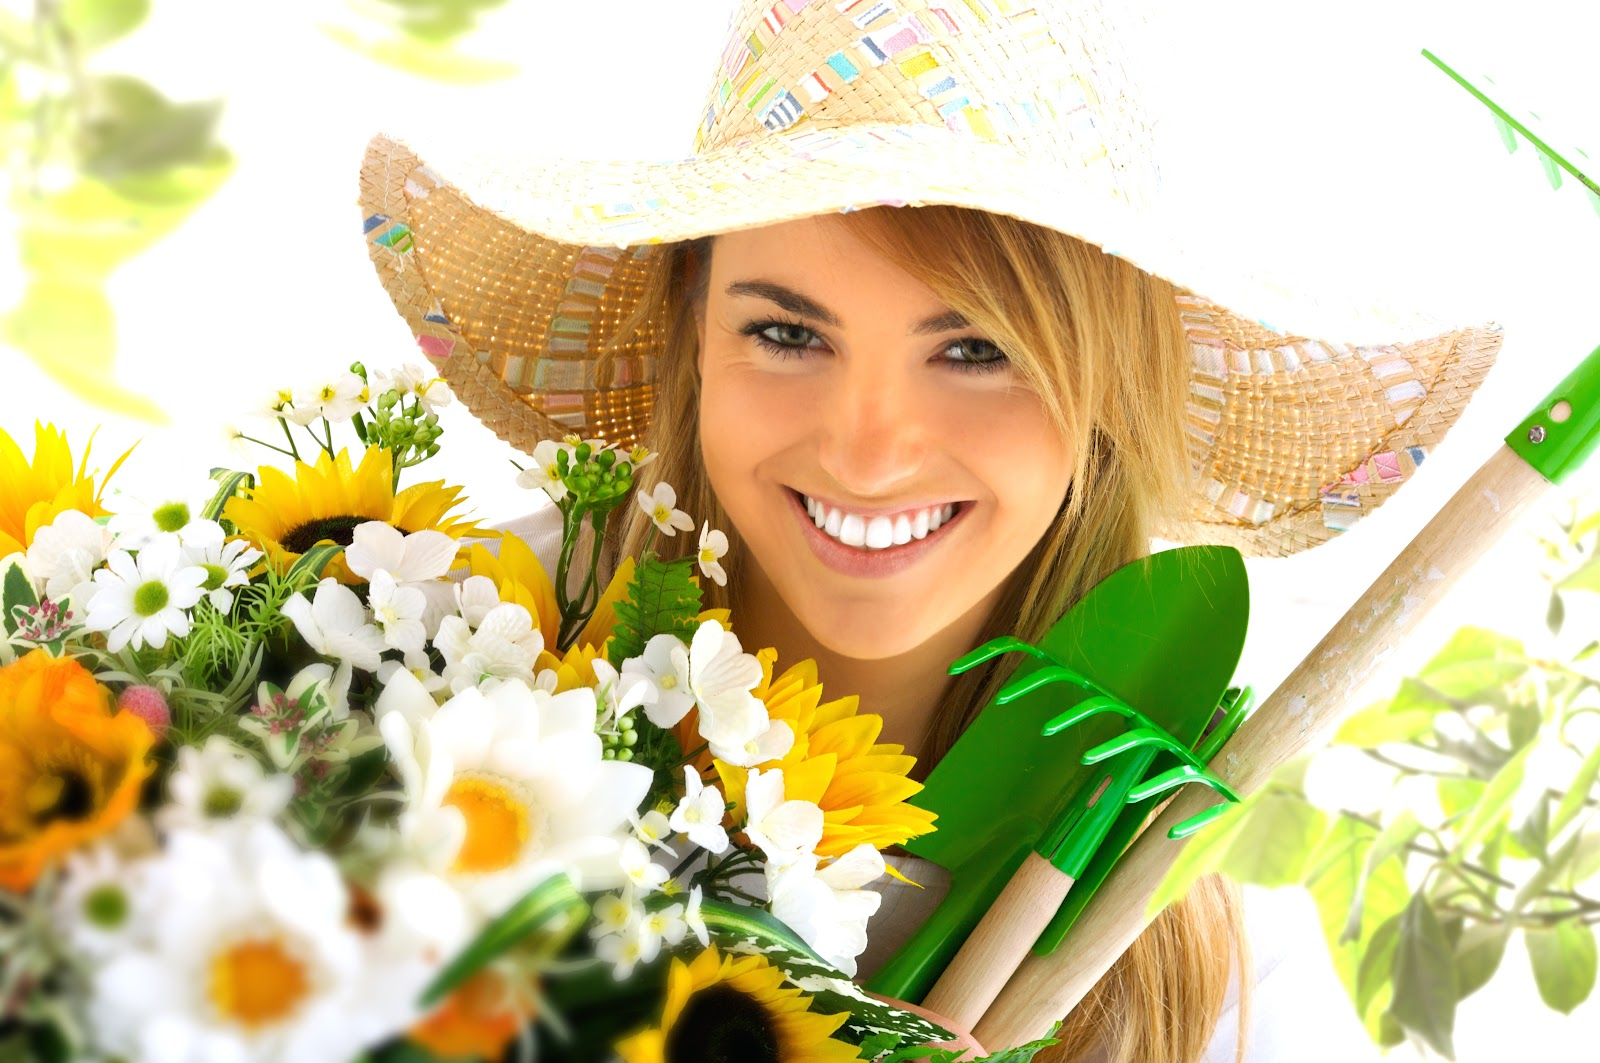 A woman smiling with plants and gardening tools